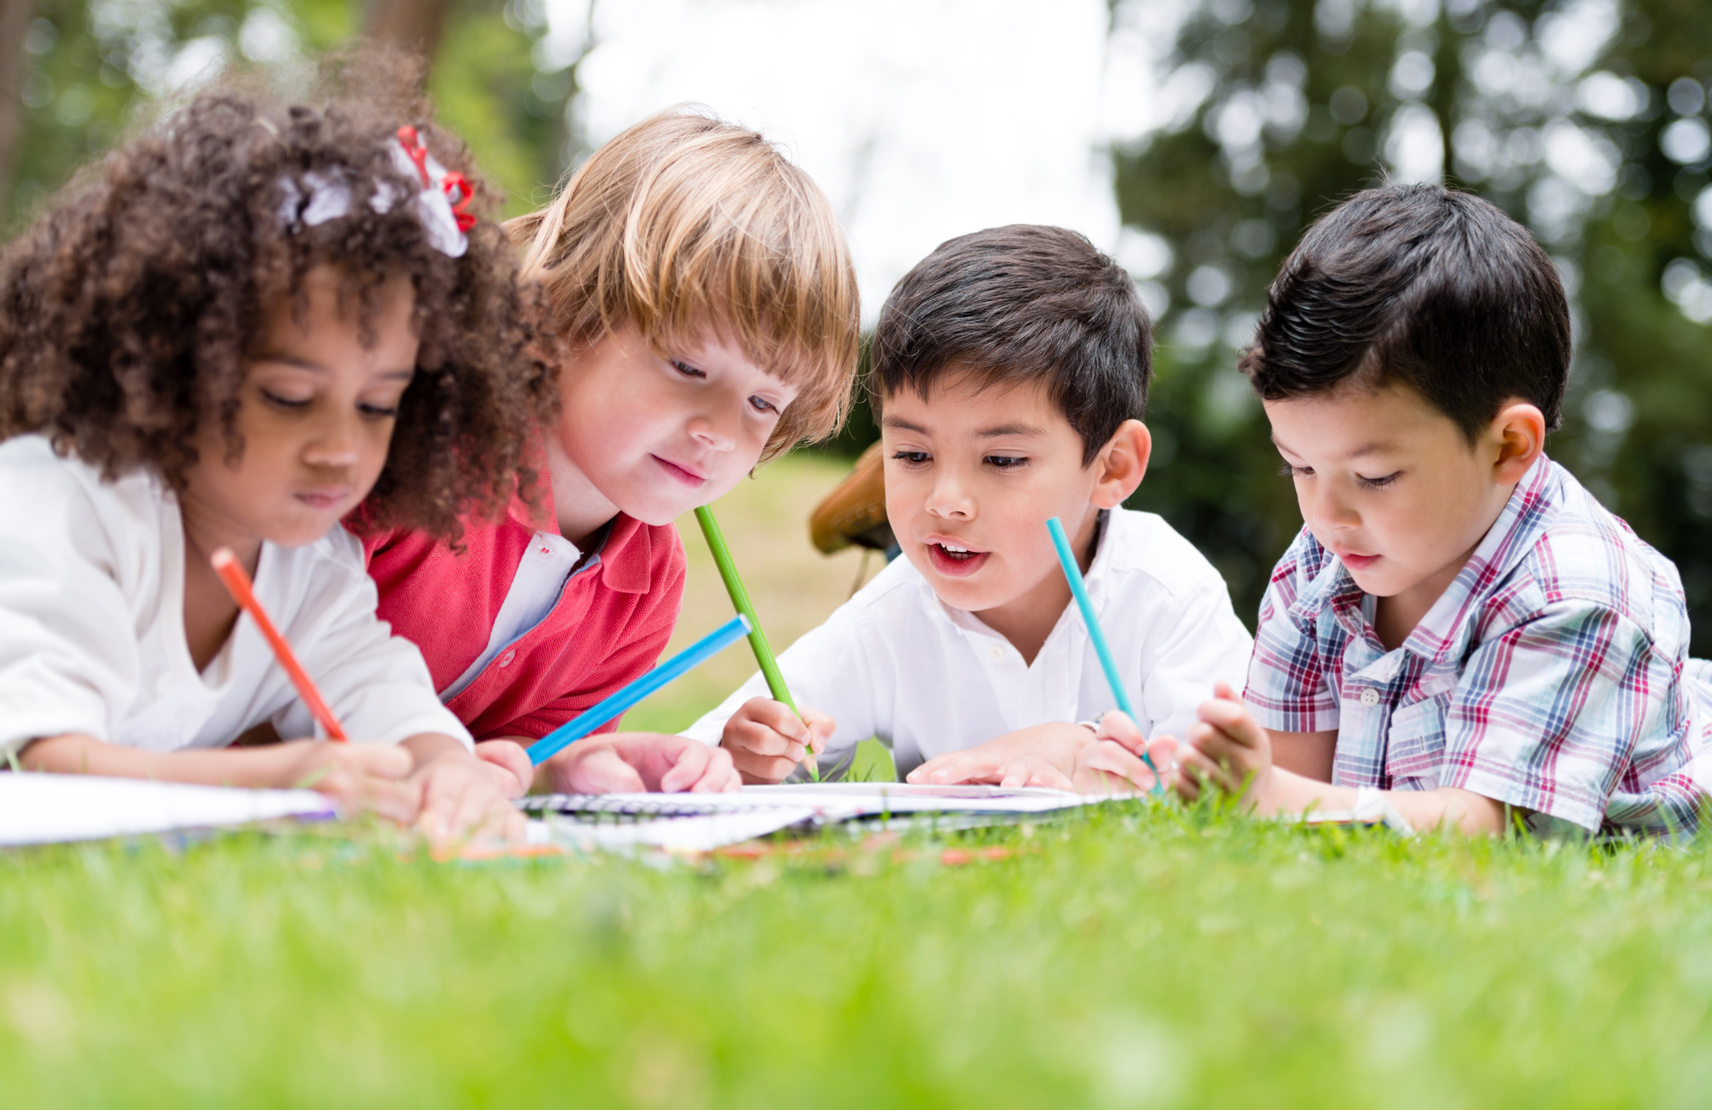 Online educational resources and activities to support children's learning